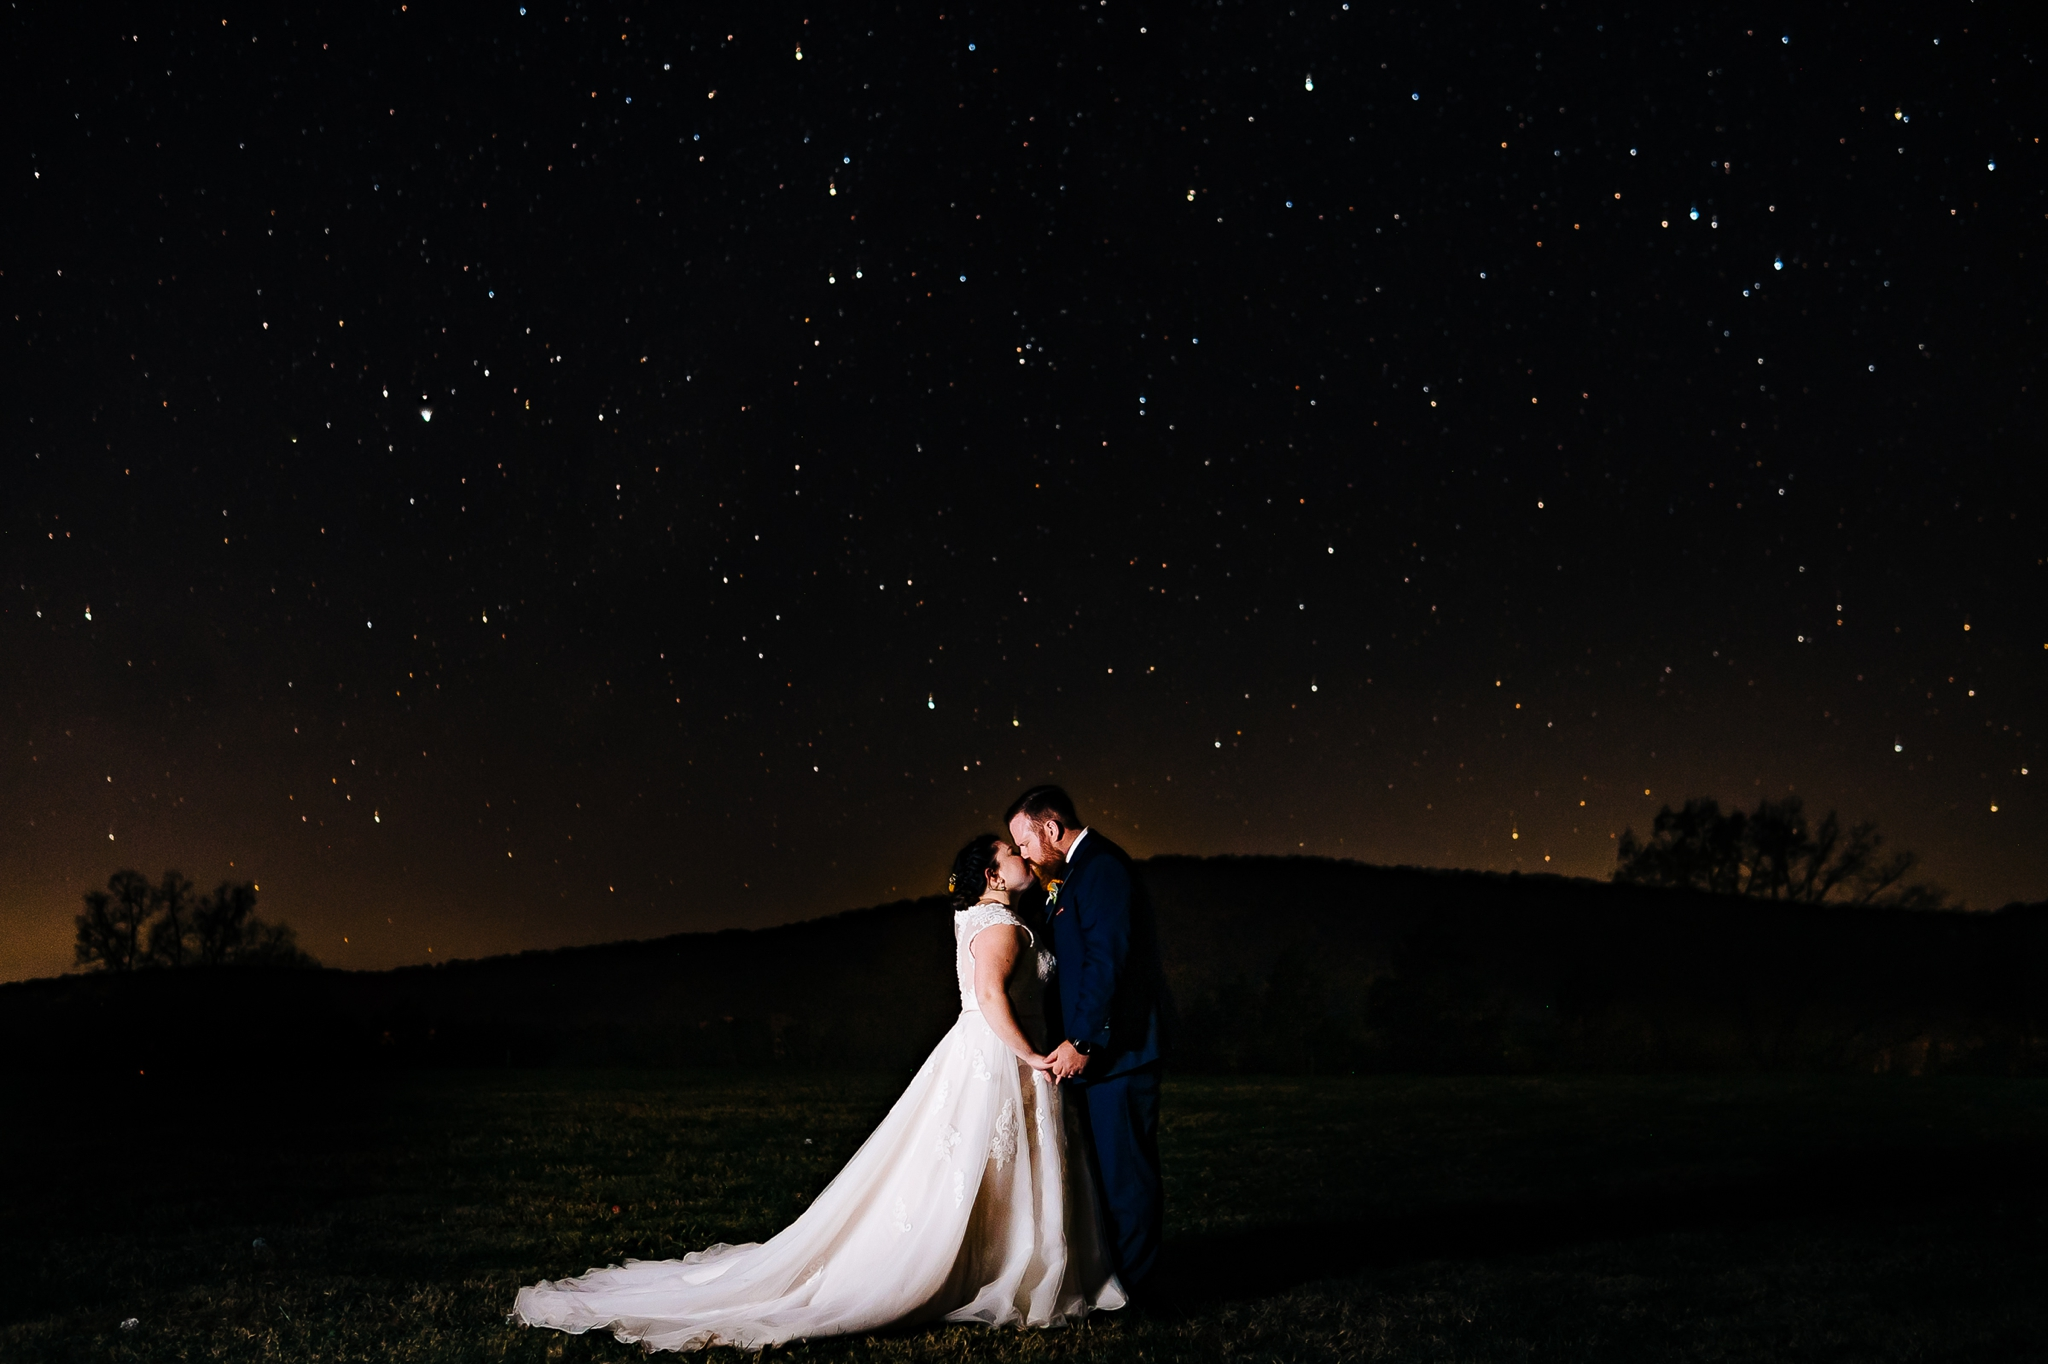 Bride_and_groom_night_portrait_standing_in_field_at_wolftrap_farms_by_jonathan_and_hannah_photography